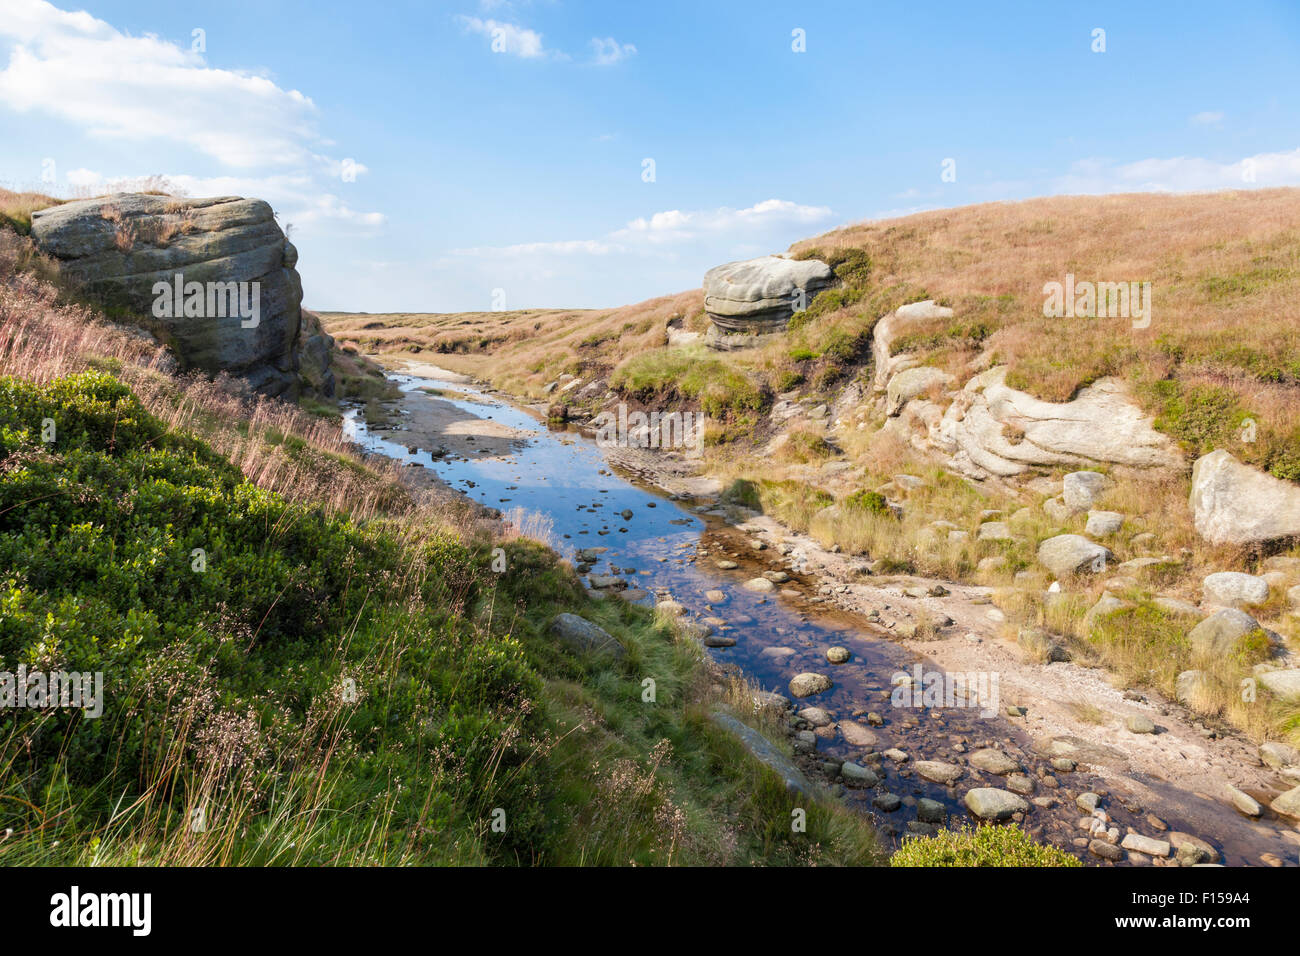 Kinder Gates on Kinder Scout in Summer. Derbyshire, Peak District National Park, England, UK - Stock Image